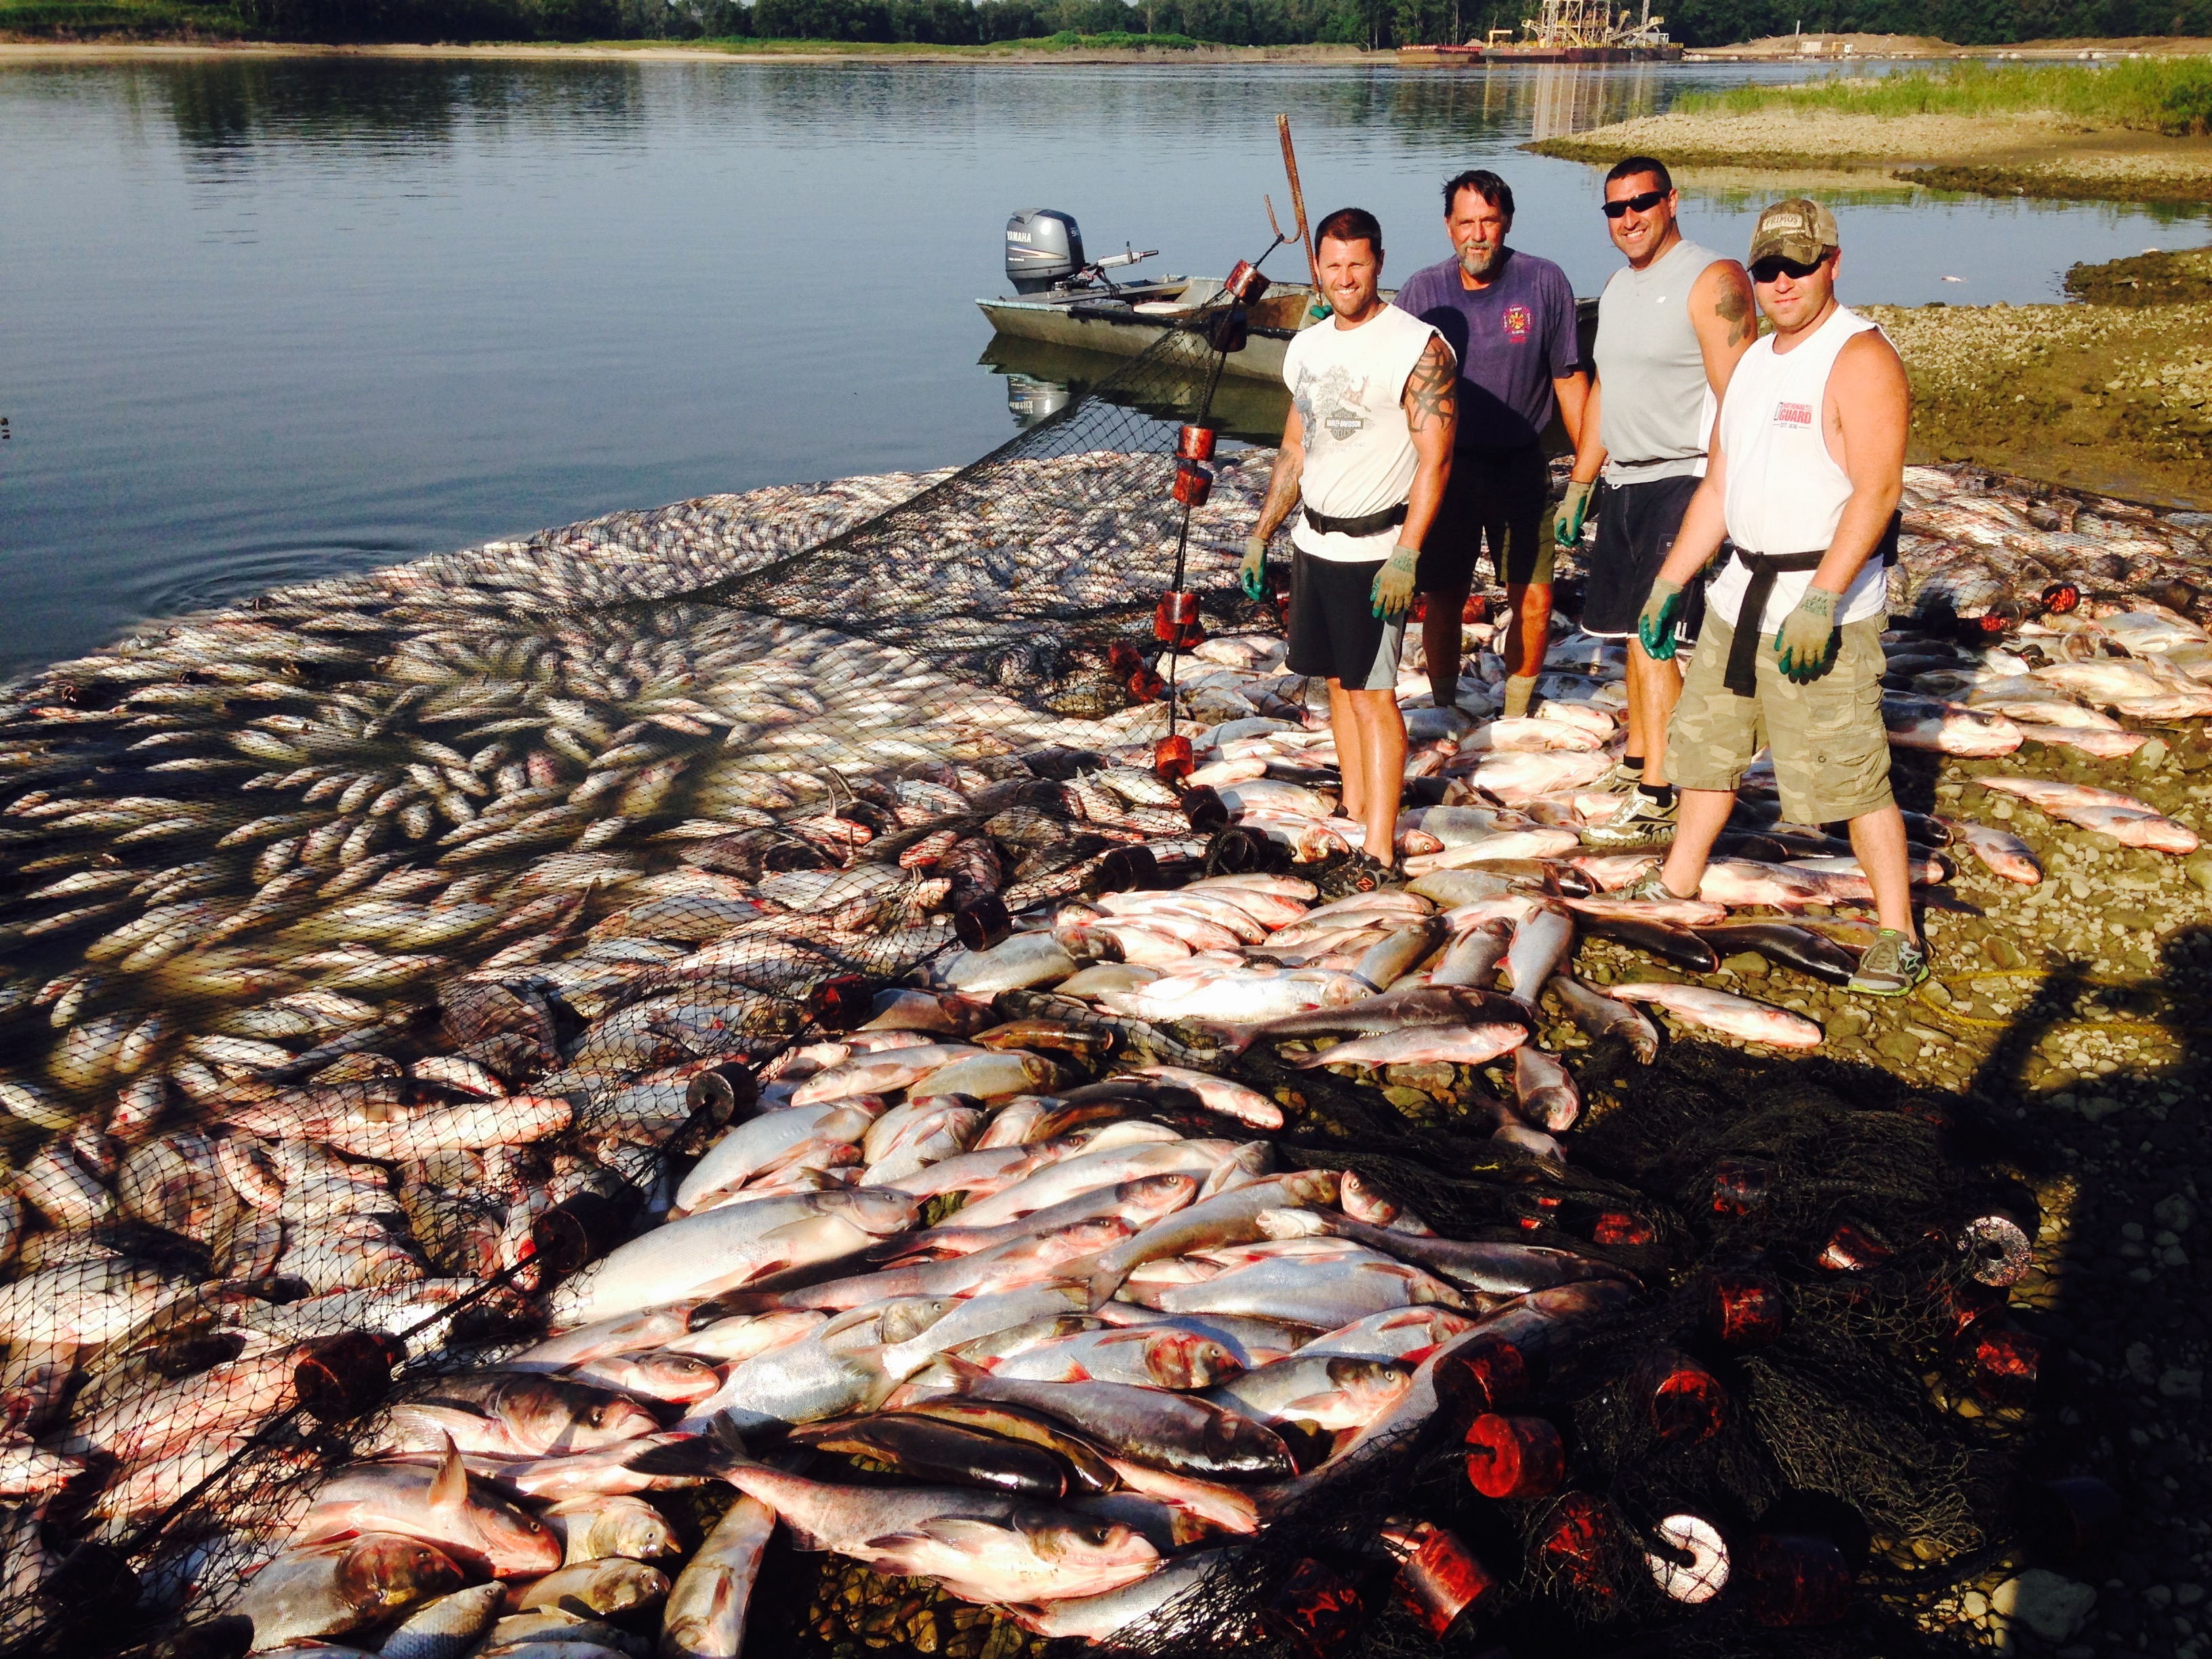 Commercial anglers stand with their catch following an Asian carp removal effort on the Illinois River last week, which employees from the Michigan DNR assisted with.